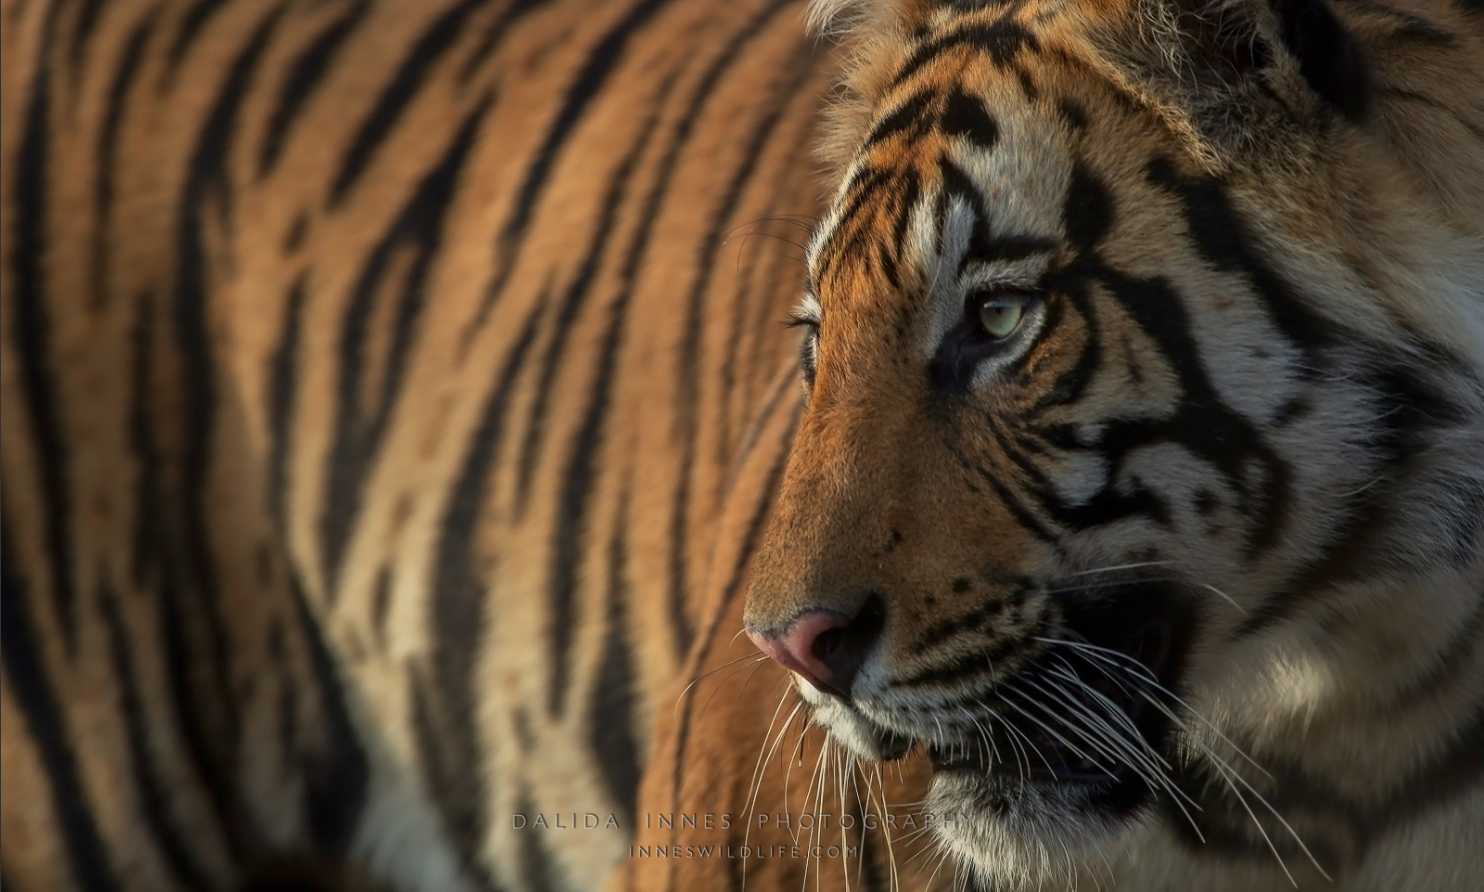 One of the three brothers from Bandhavgarh National Park, India.